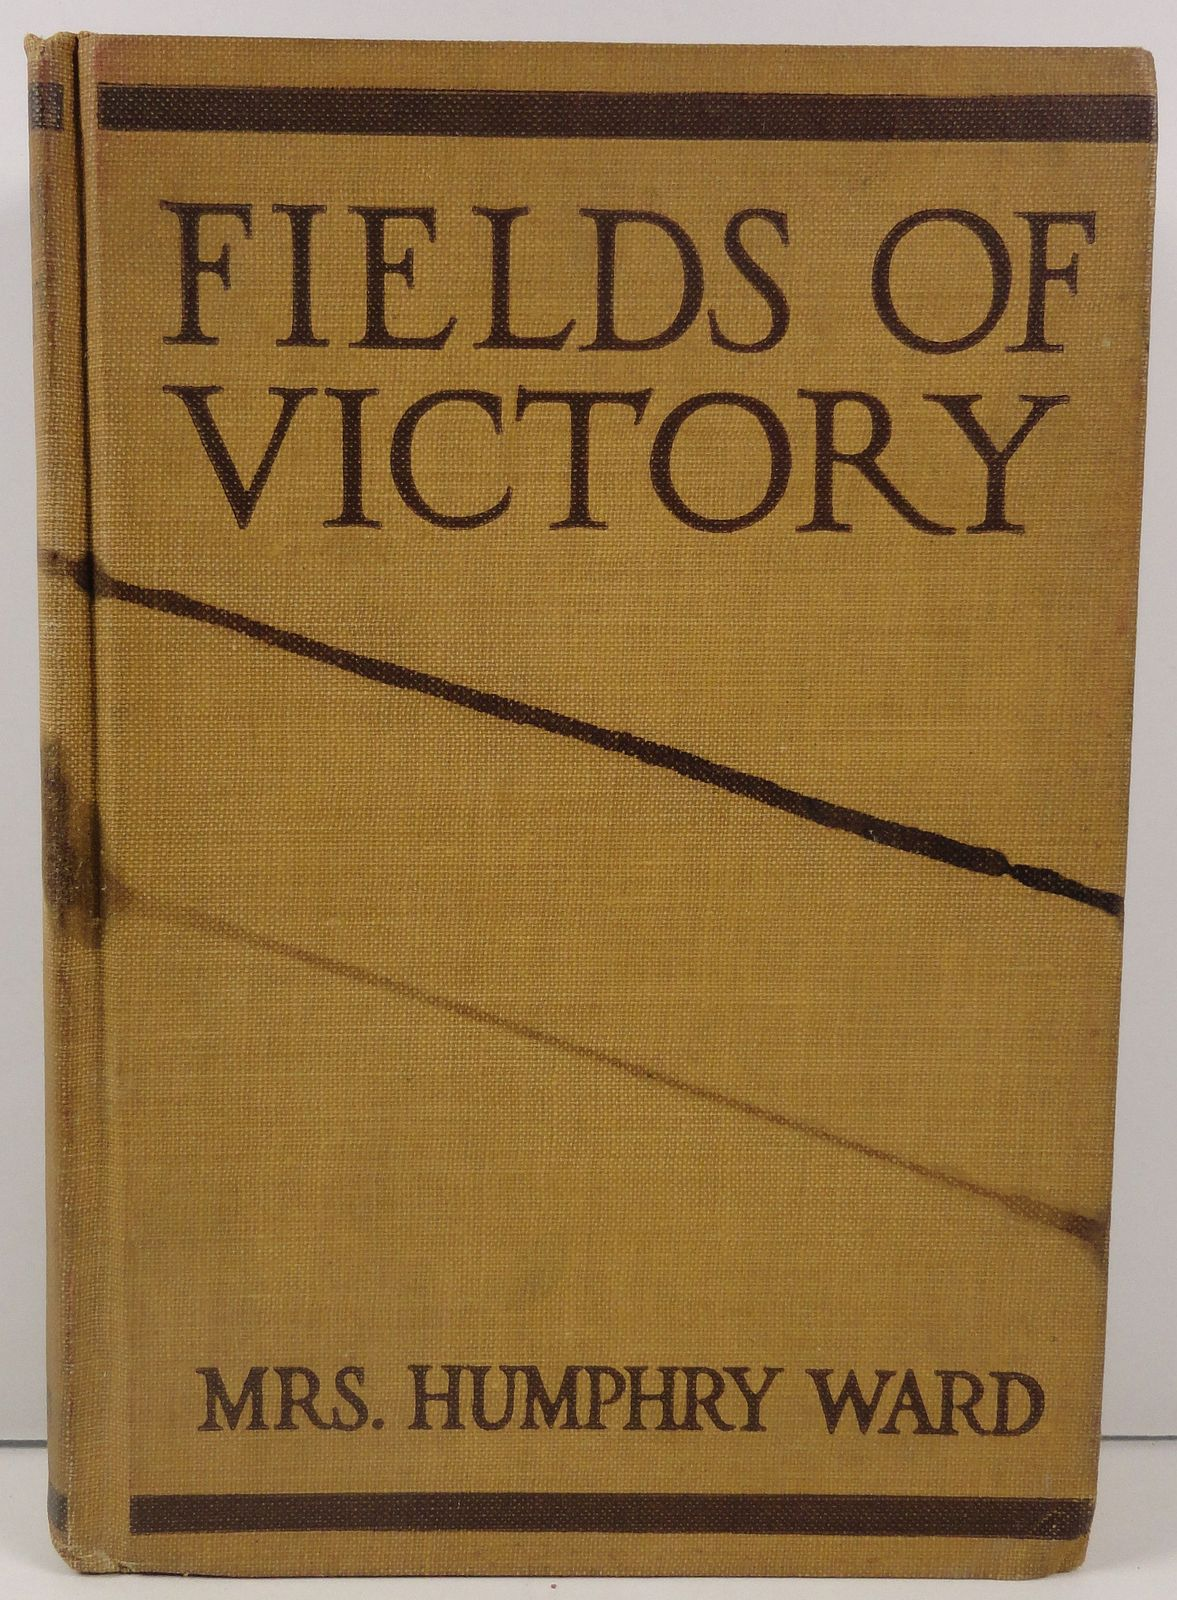 Primary image for Fields of Victory by Mrs. Humphry Ward 1919